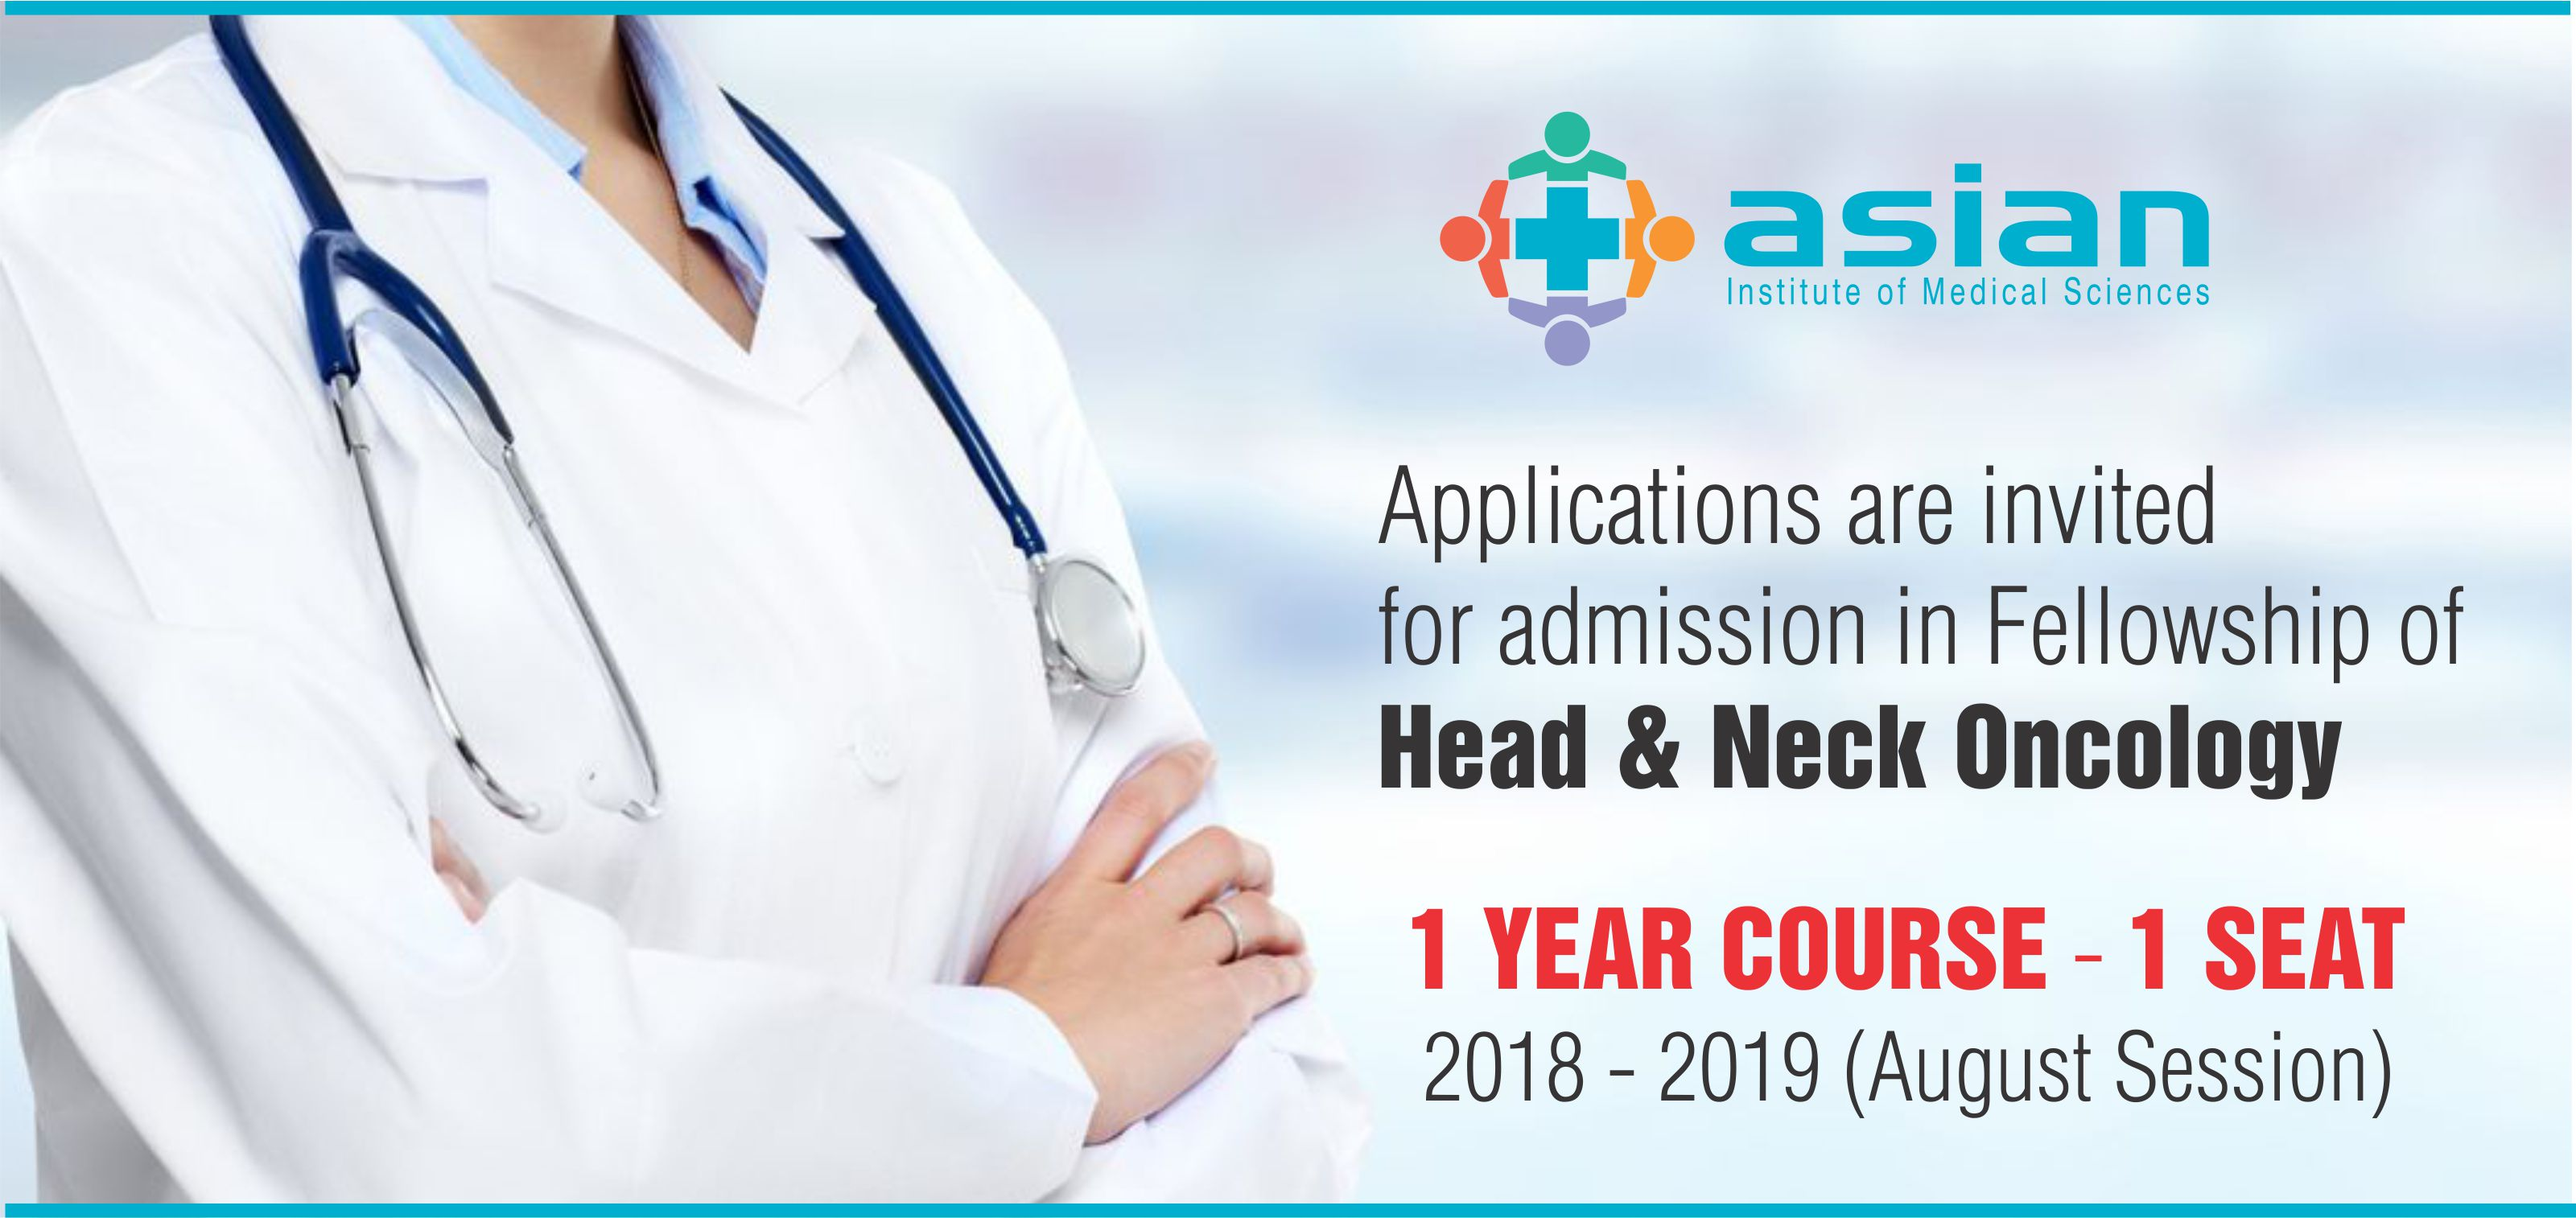 Fellowship in Head & Neck Oncology - Asian Hospital Faridabad